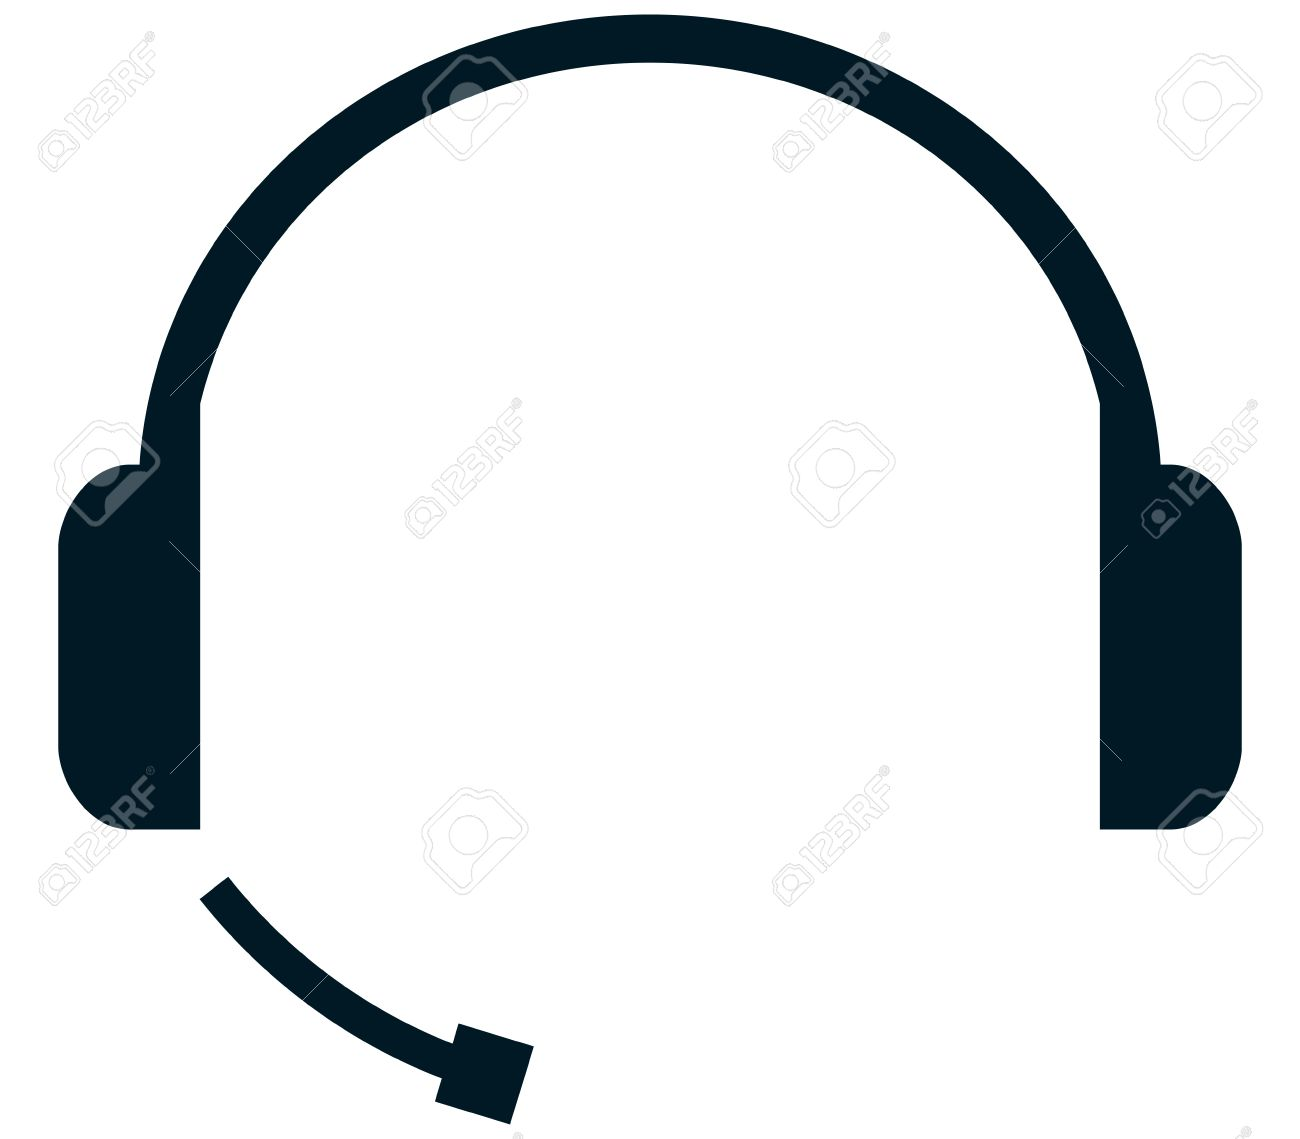 233 Headset free clipart.